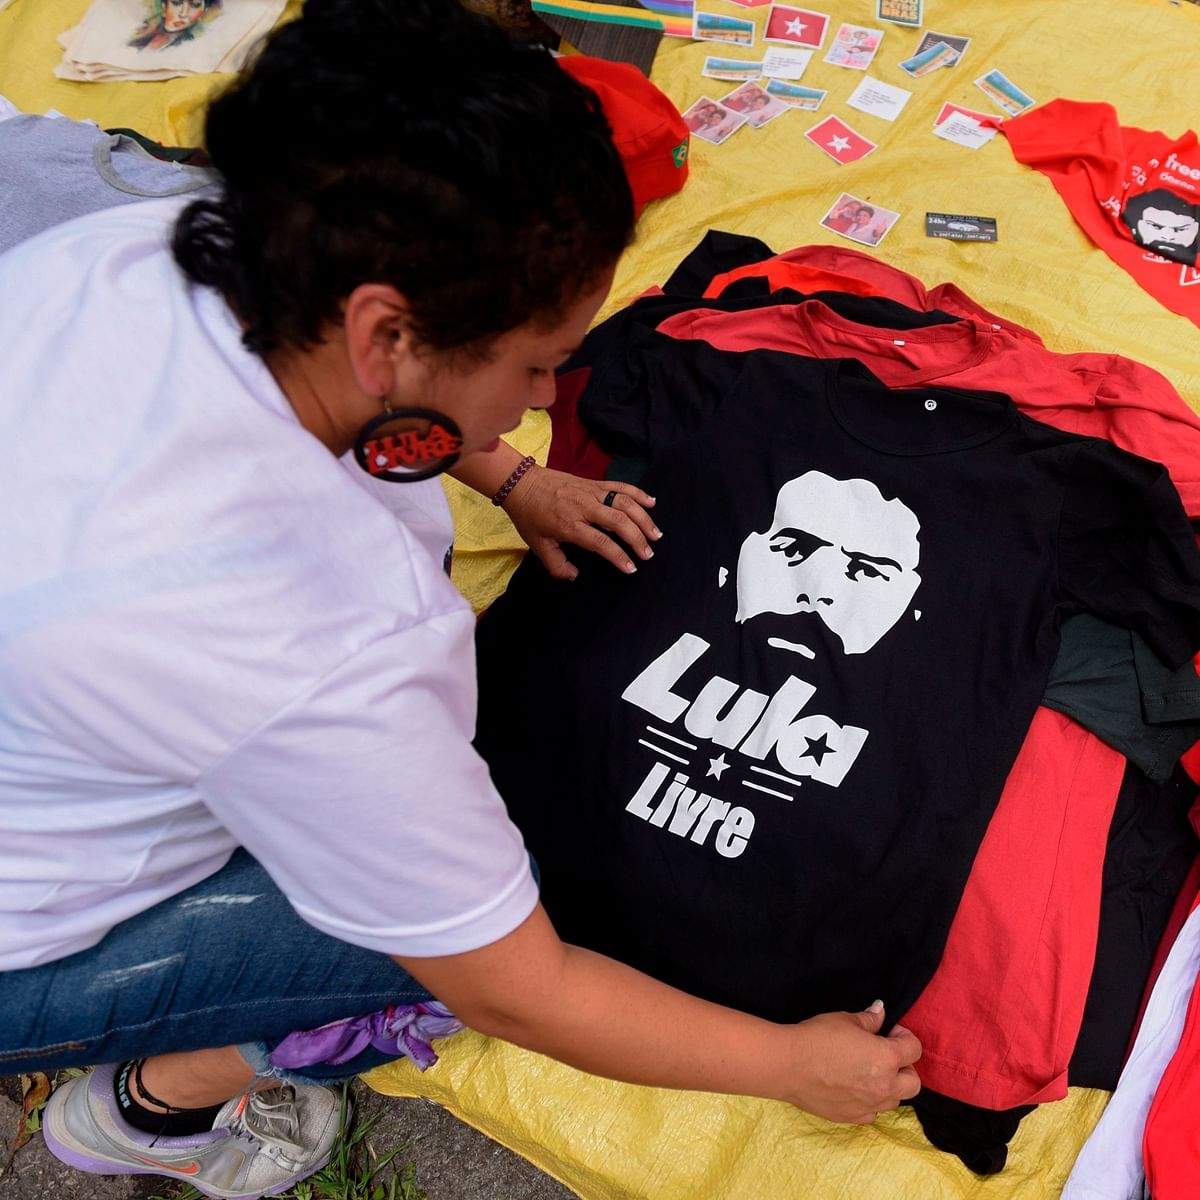 Brazil court ruling could free jailed ex-President Luiz Lula